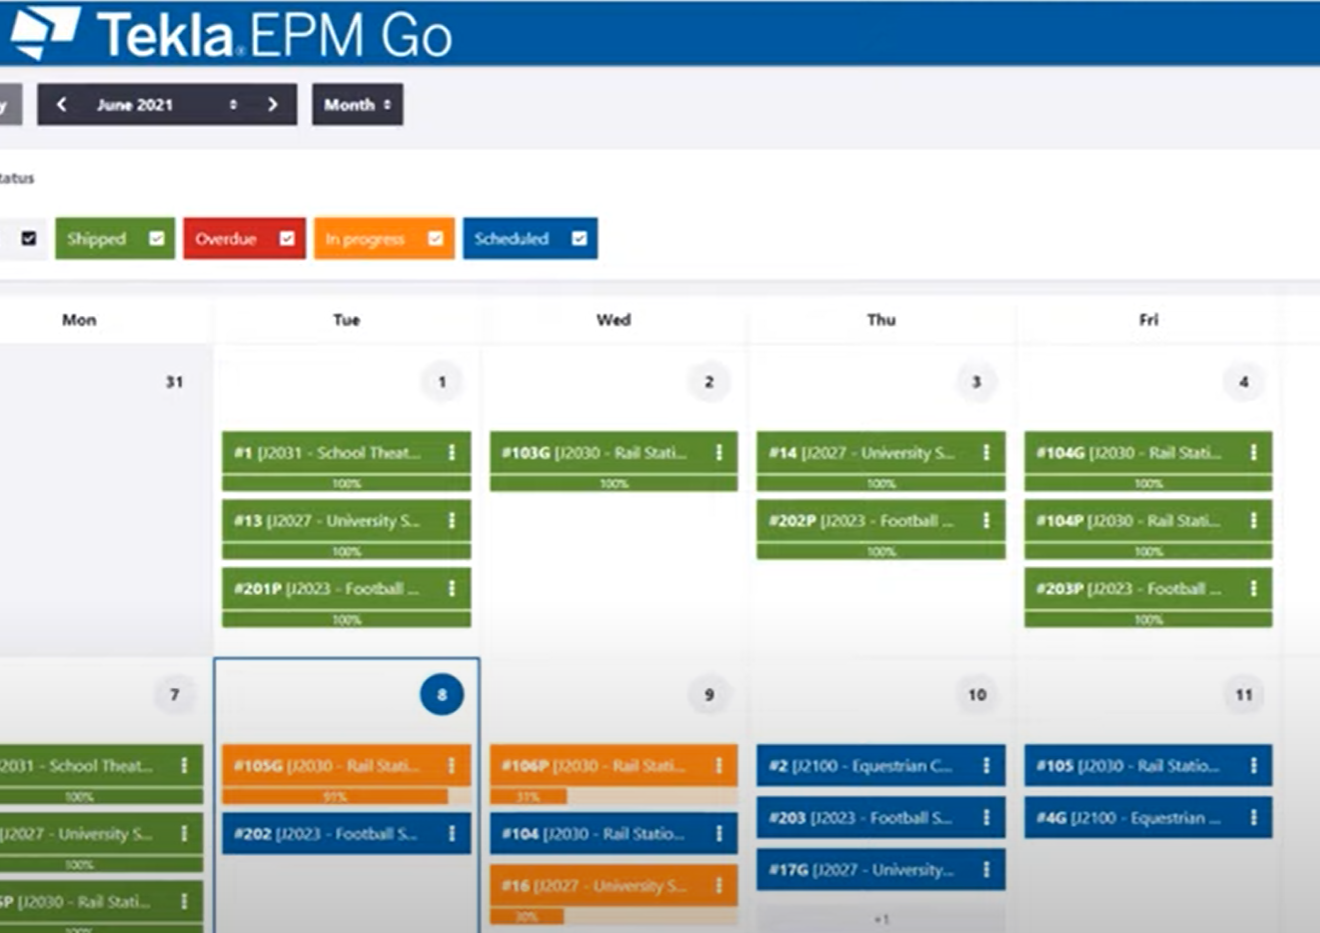 New shipping schedule to better plan and organize your shipments across all jobs